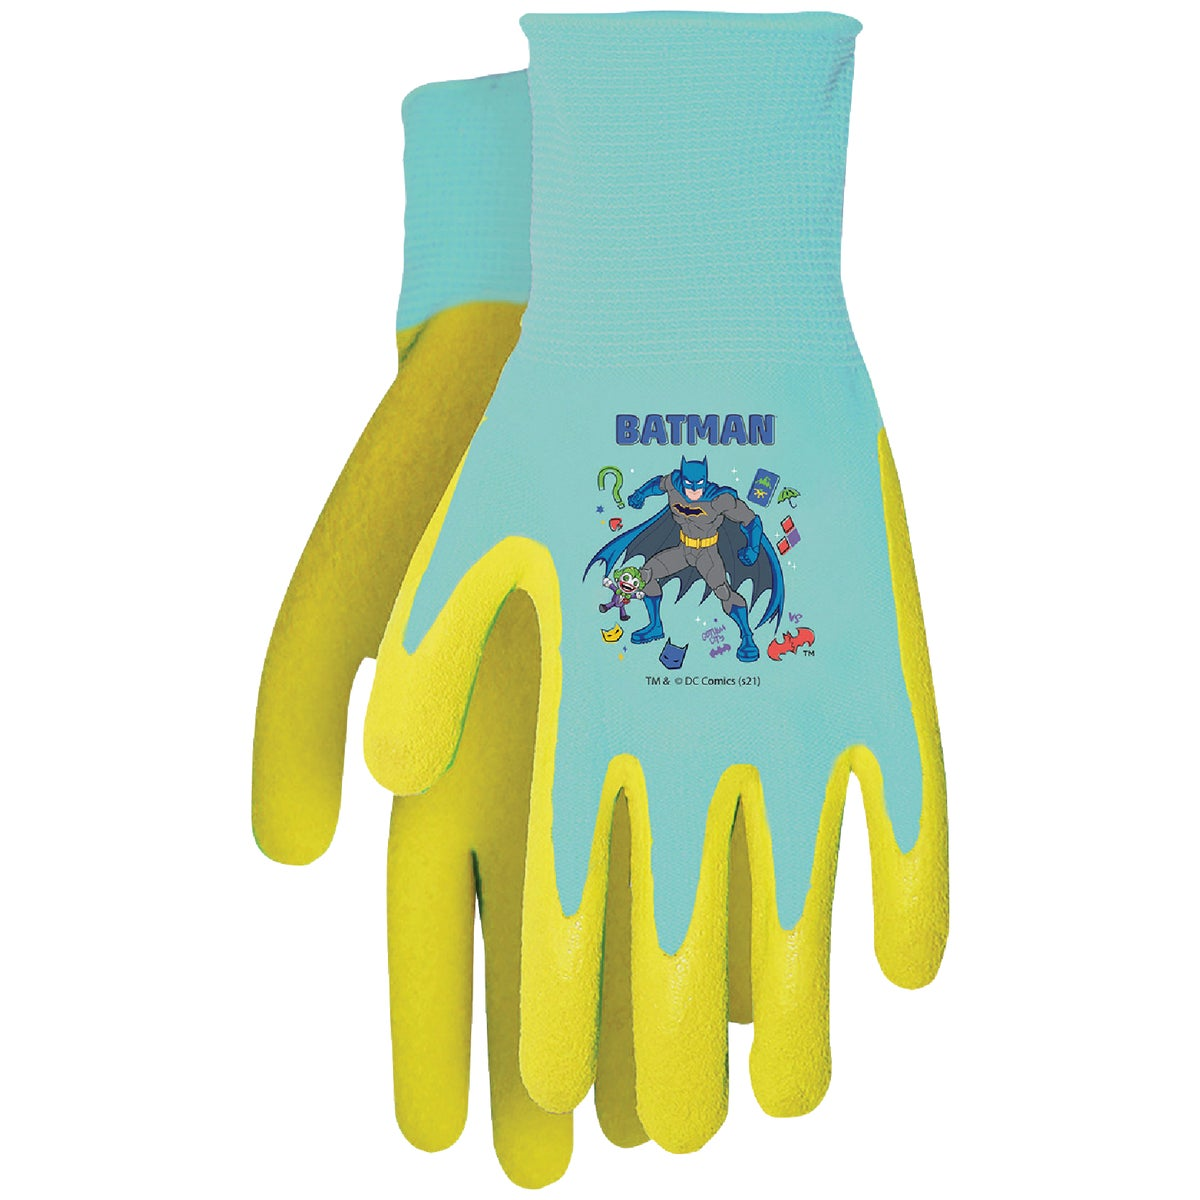 KIDS SPONGBOB GRIP GLOVE - SS100K by Midwest Quality Glov